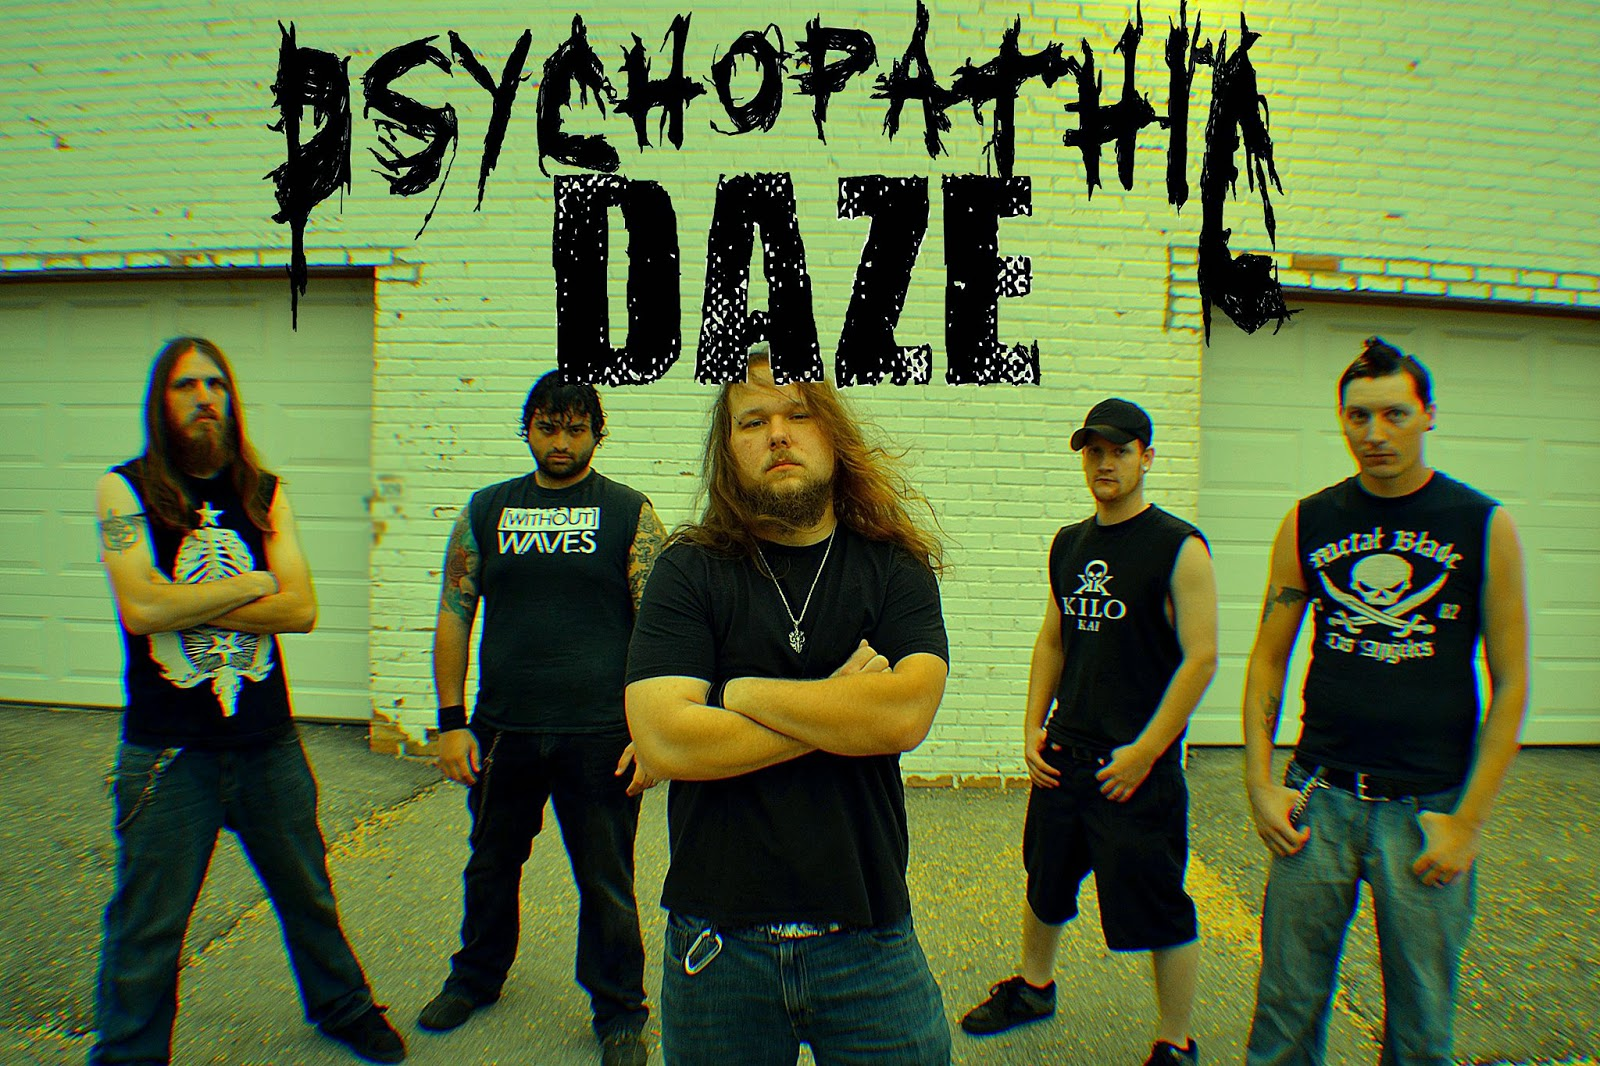 https://www.facebook.com/psychopathicdaze?fref=photo